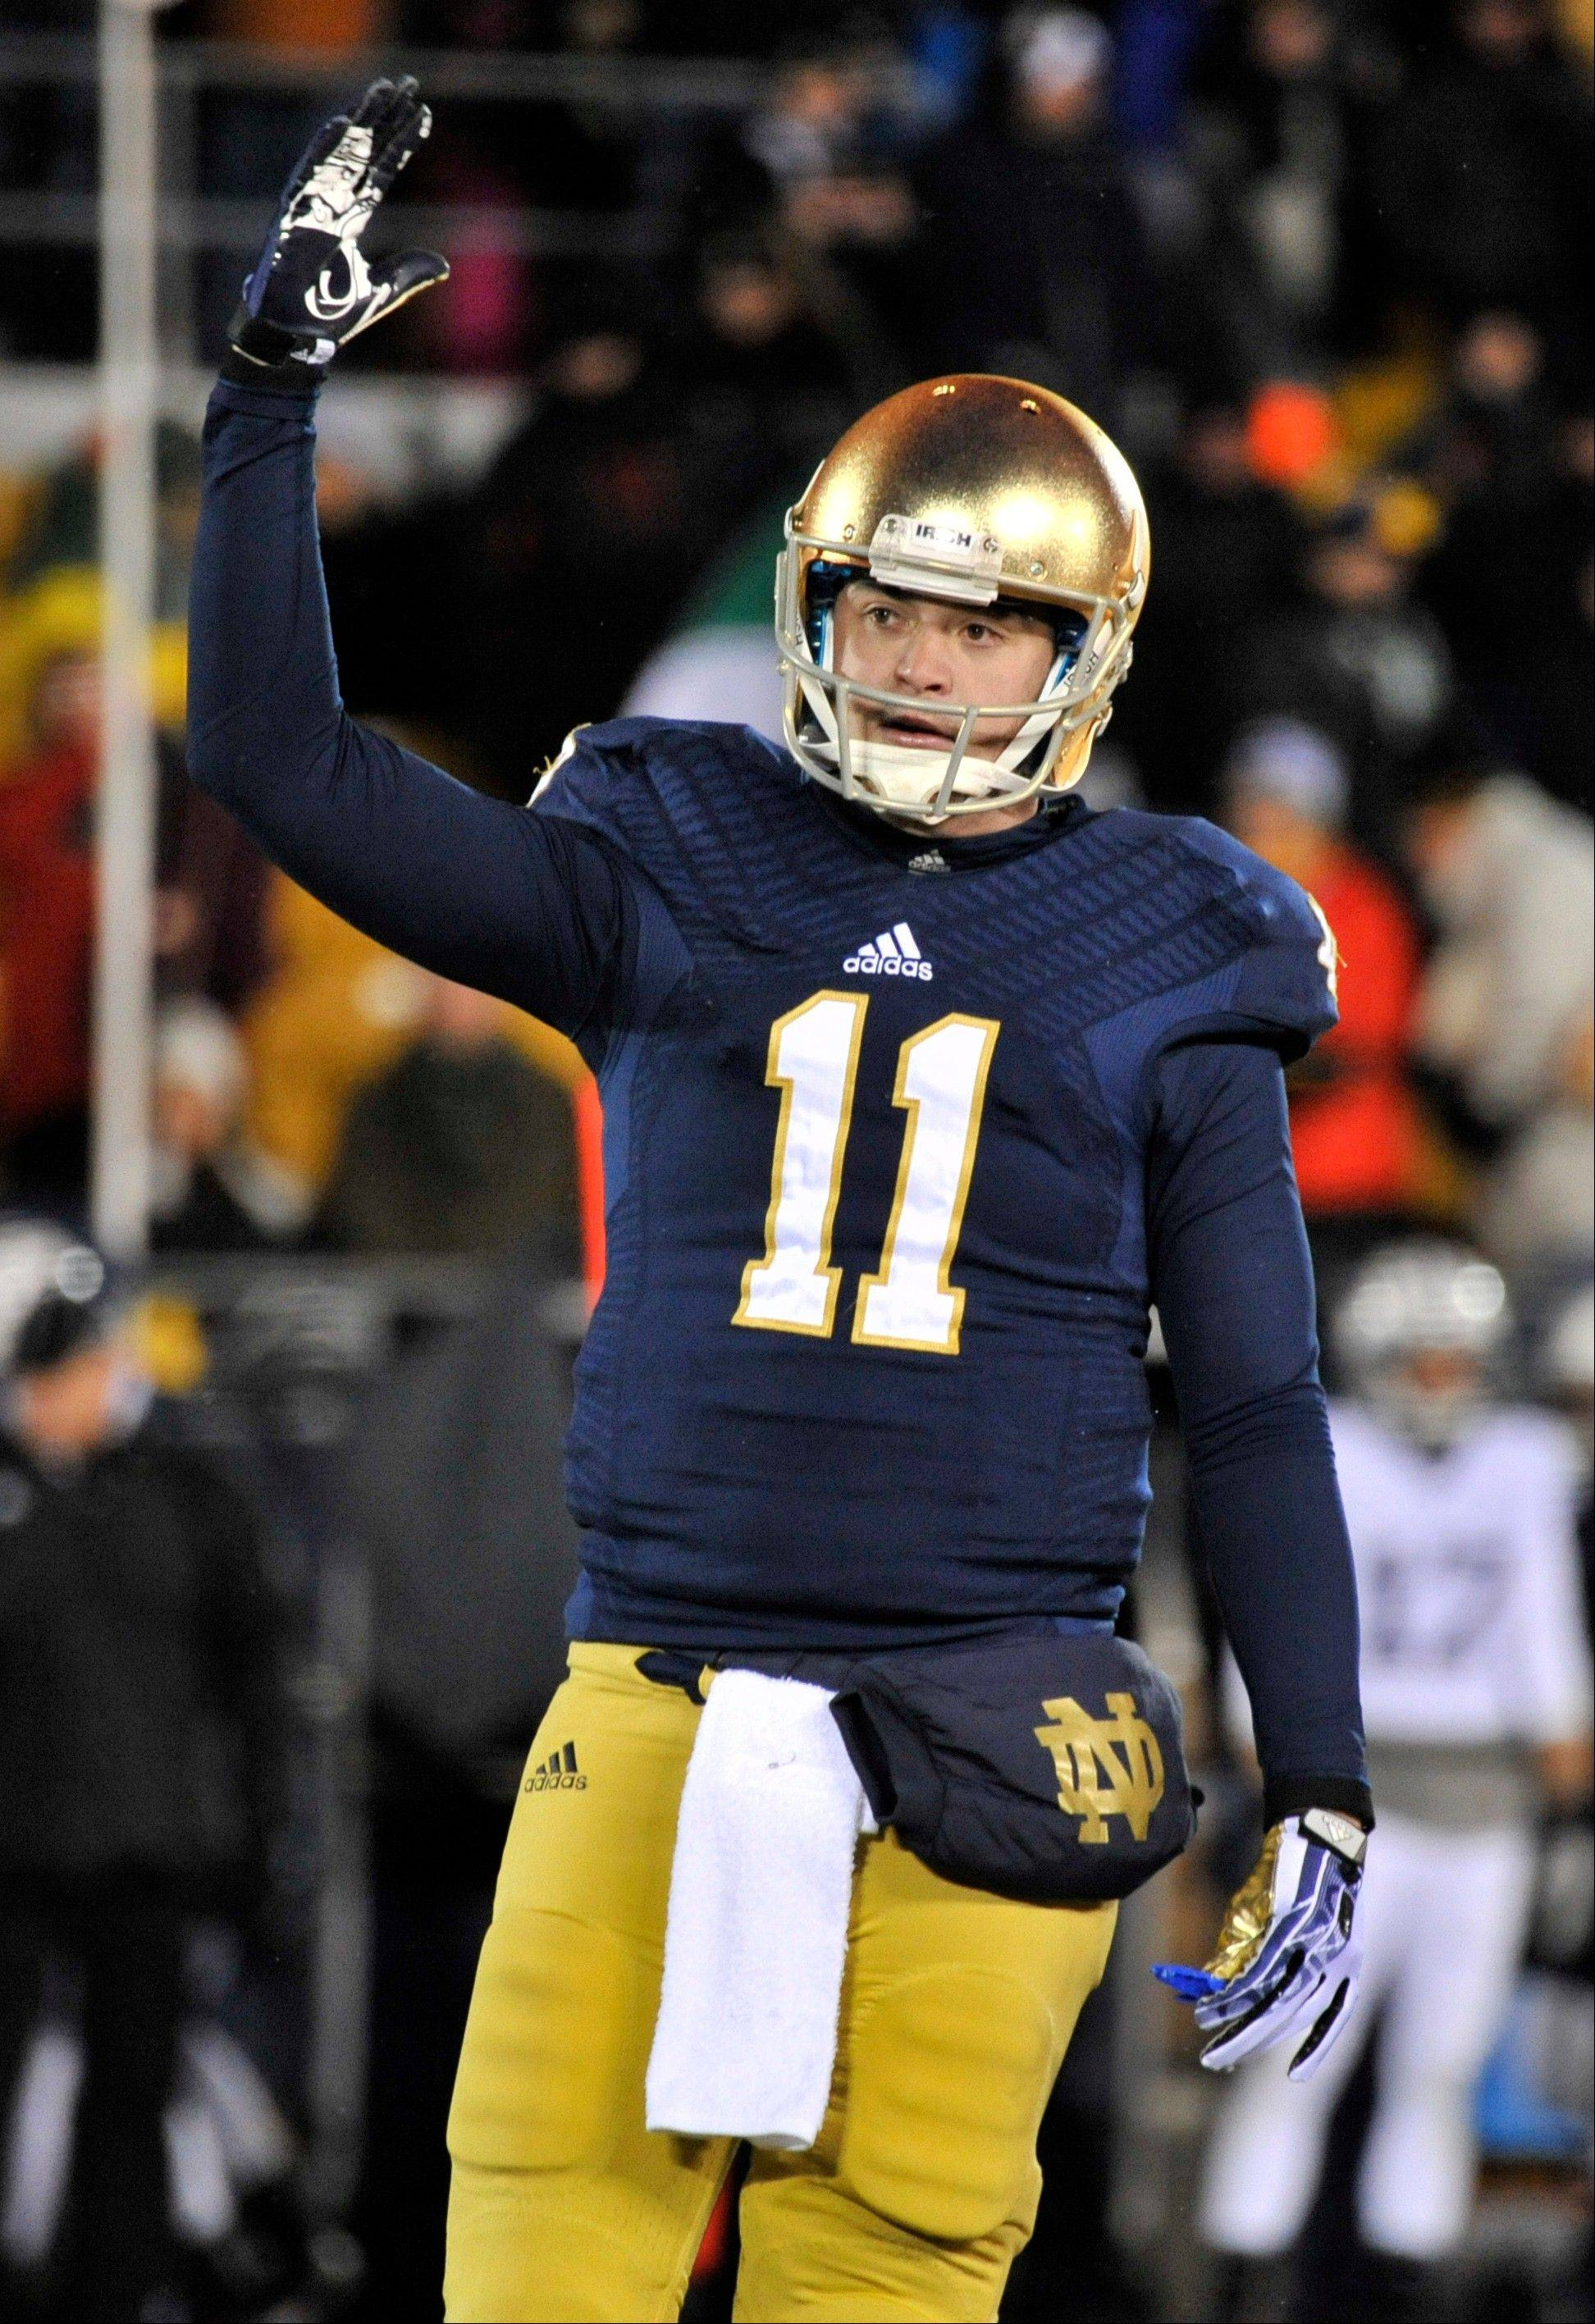 Notre Dame quarterback Tommy Rees and rest of the Fighting Irish will play in the Pinstripe Bowl later this month.